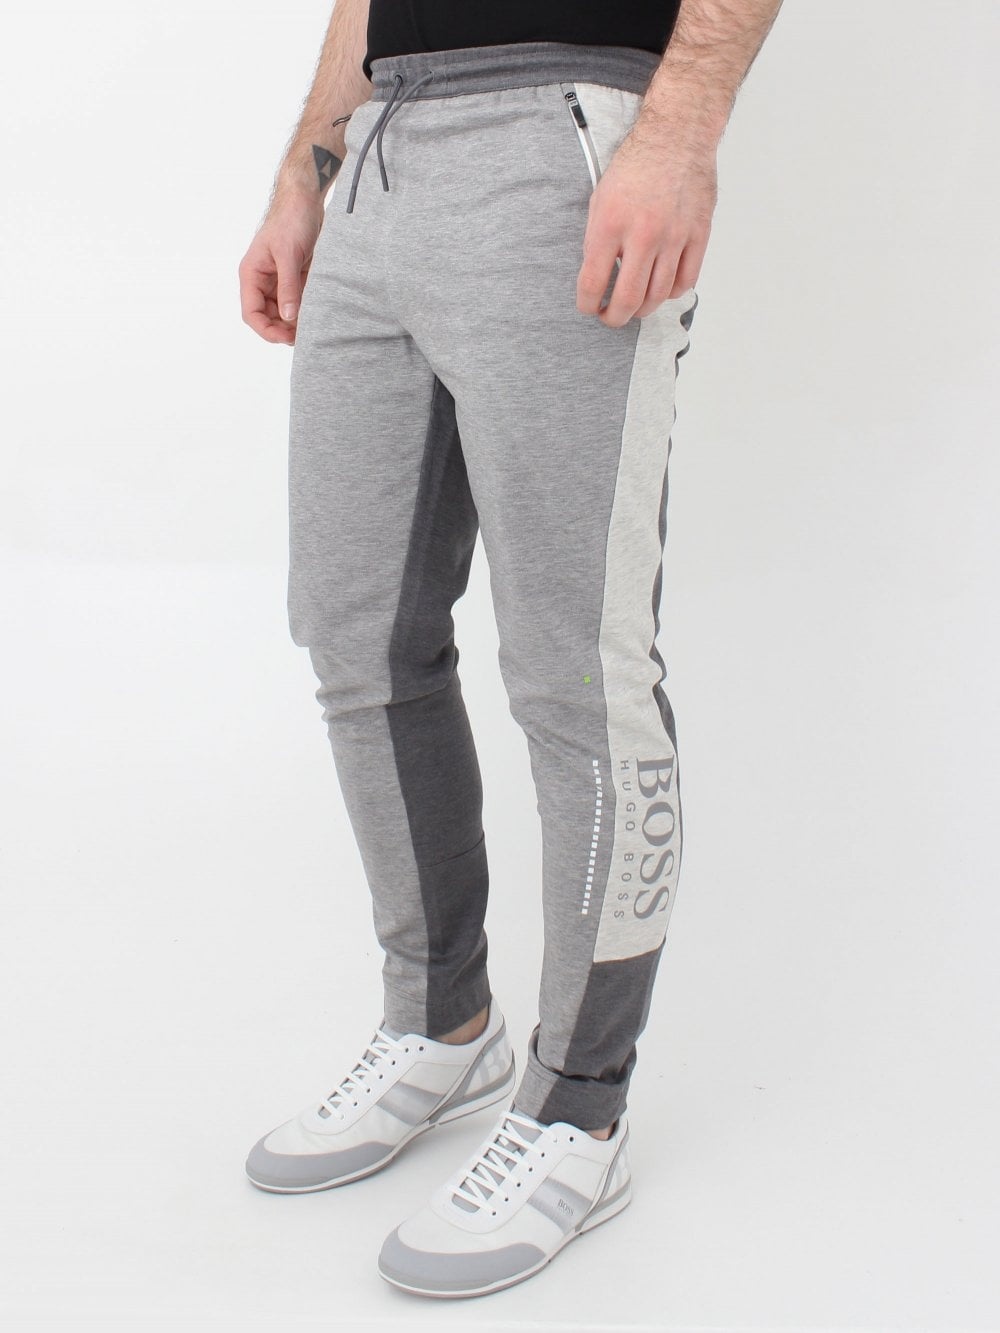 details for clear-cut texture best site Athleisure HL Tech Track Pants - Pastel Grey